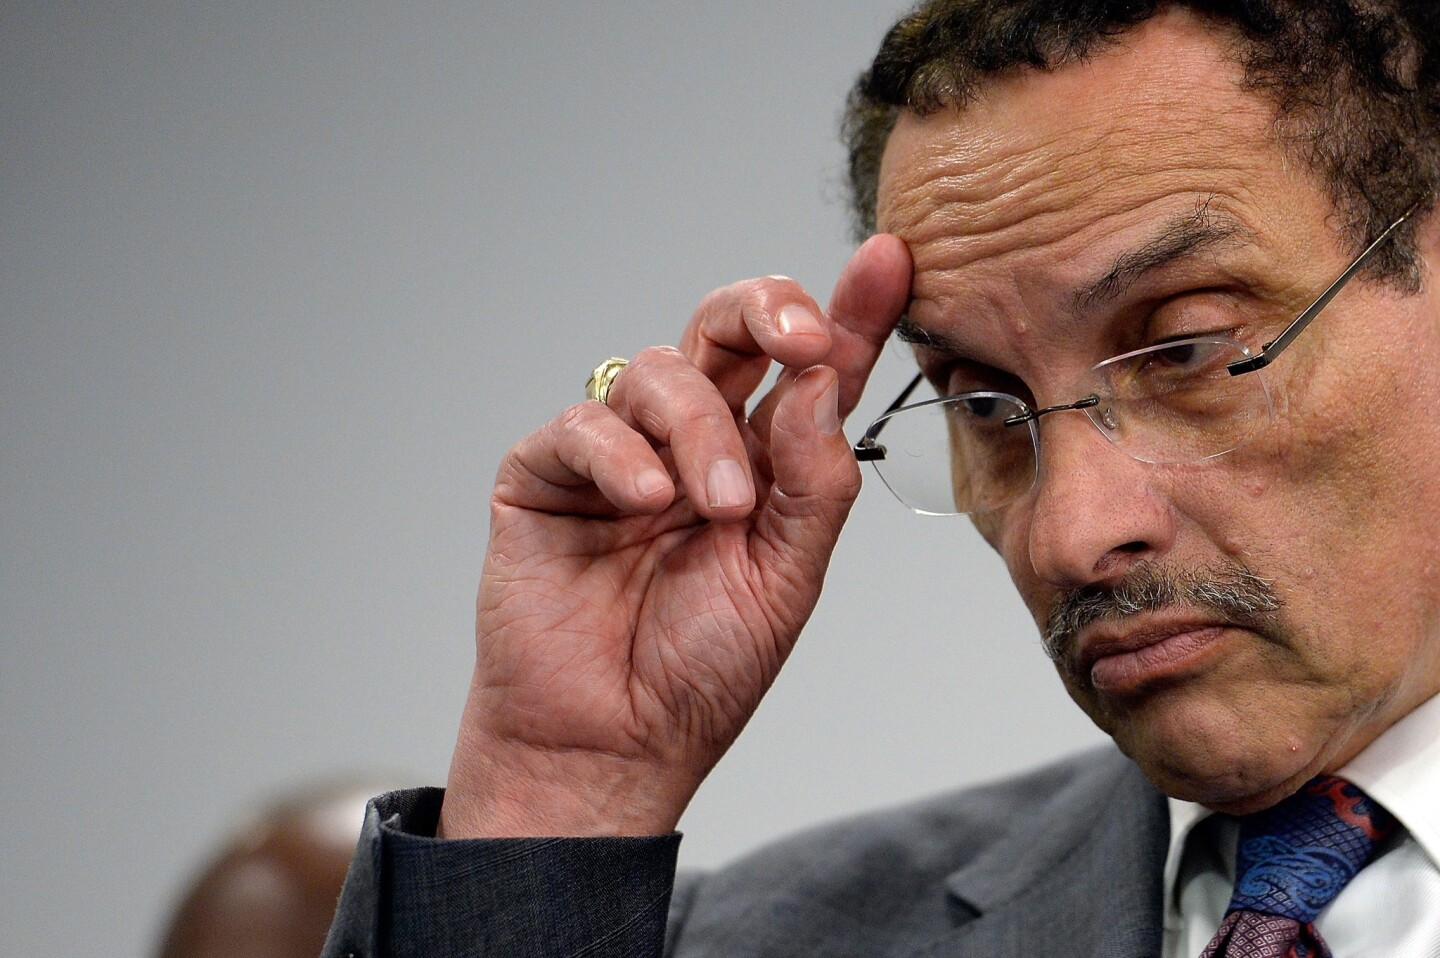 """Though Washington, D.C., has refused to cut services to the degree seen in previous shutdowns, Mayor Vincent Gray issued a letter Tuesday warning that """"time is running out -- and, soon, I will have exhausted every resource available to me to protect our residents, our workers, and our visitors."""""""